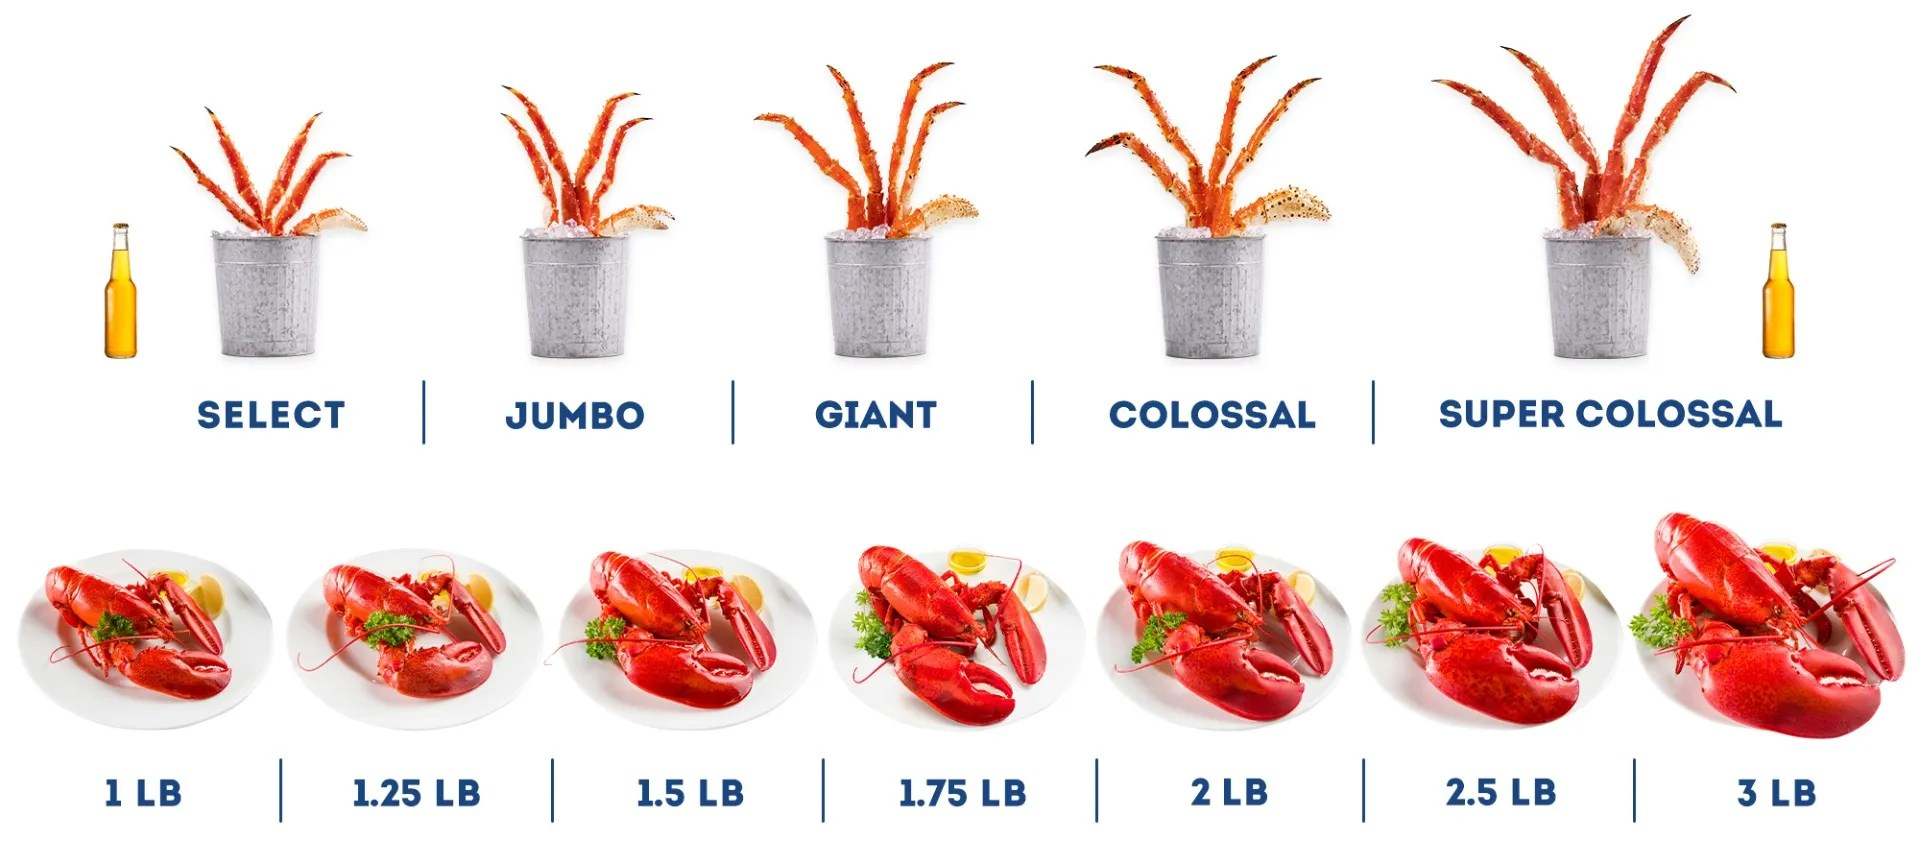 JUMBO Live Lobsters GIANT Lobsters For Sale Online Maine Lobster Now - lobster customer service